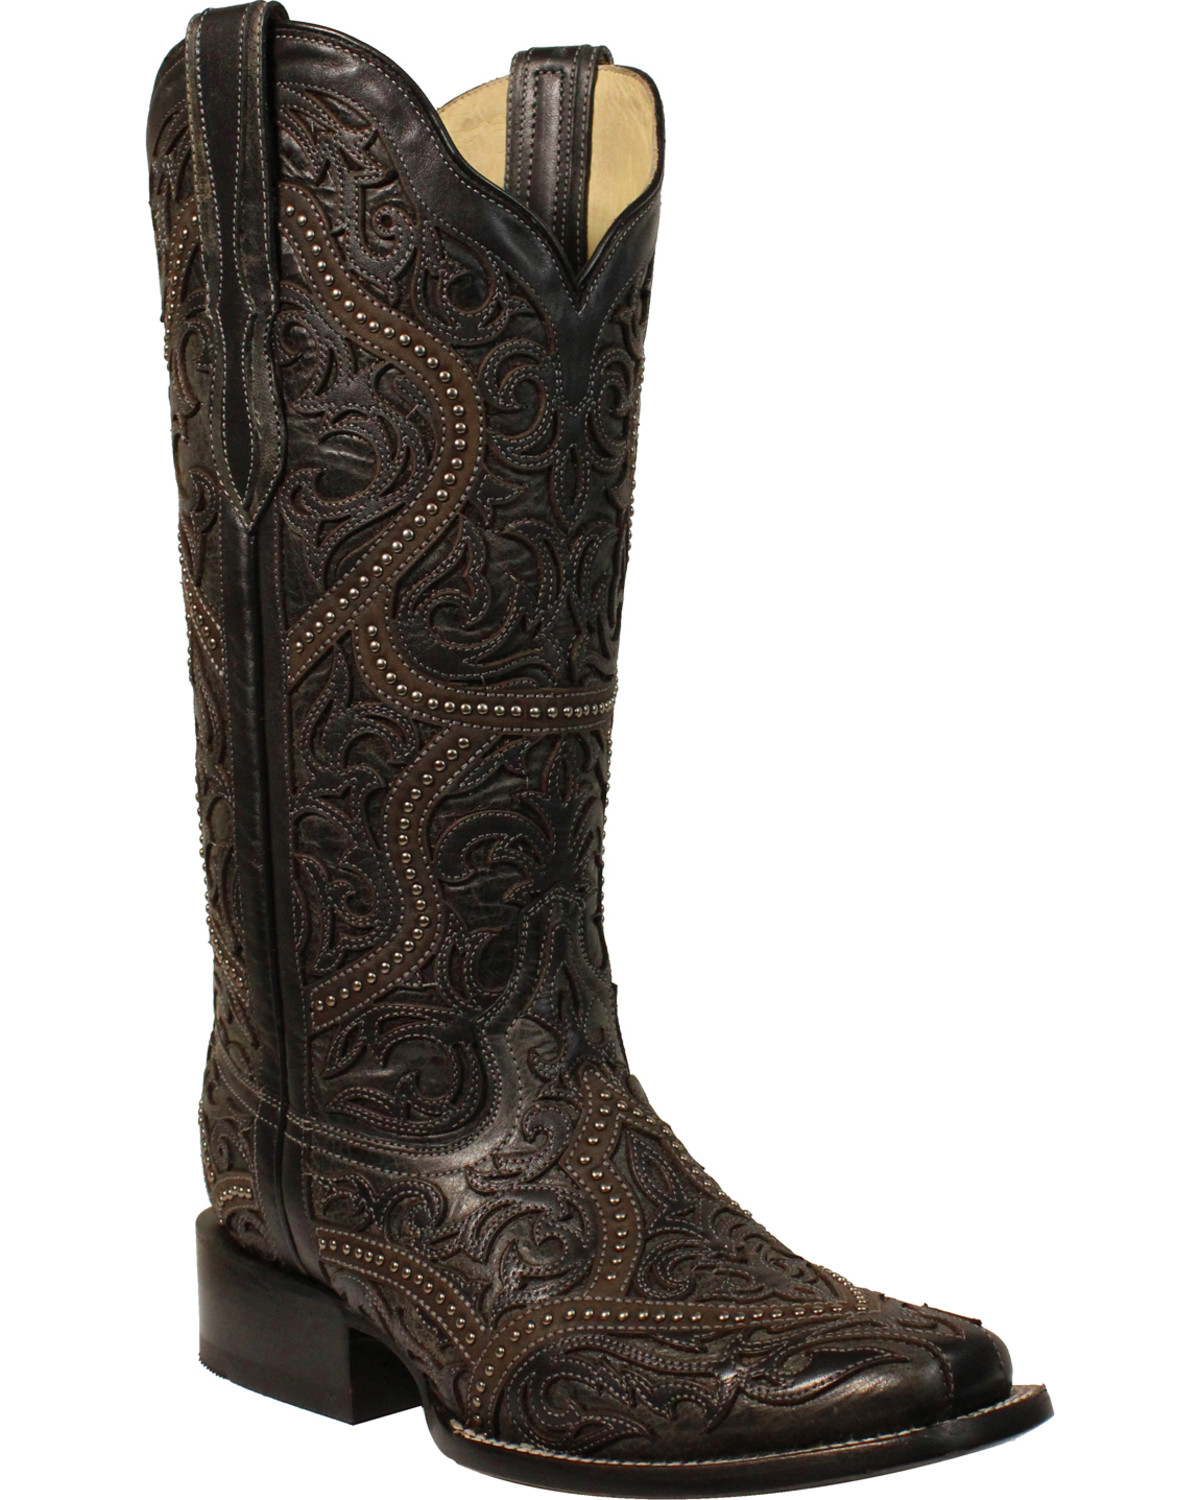 Corral Women S Black Full Overlay Studs Cowgirl Boots